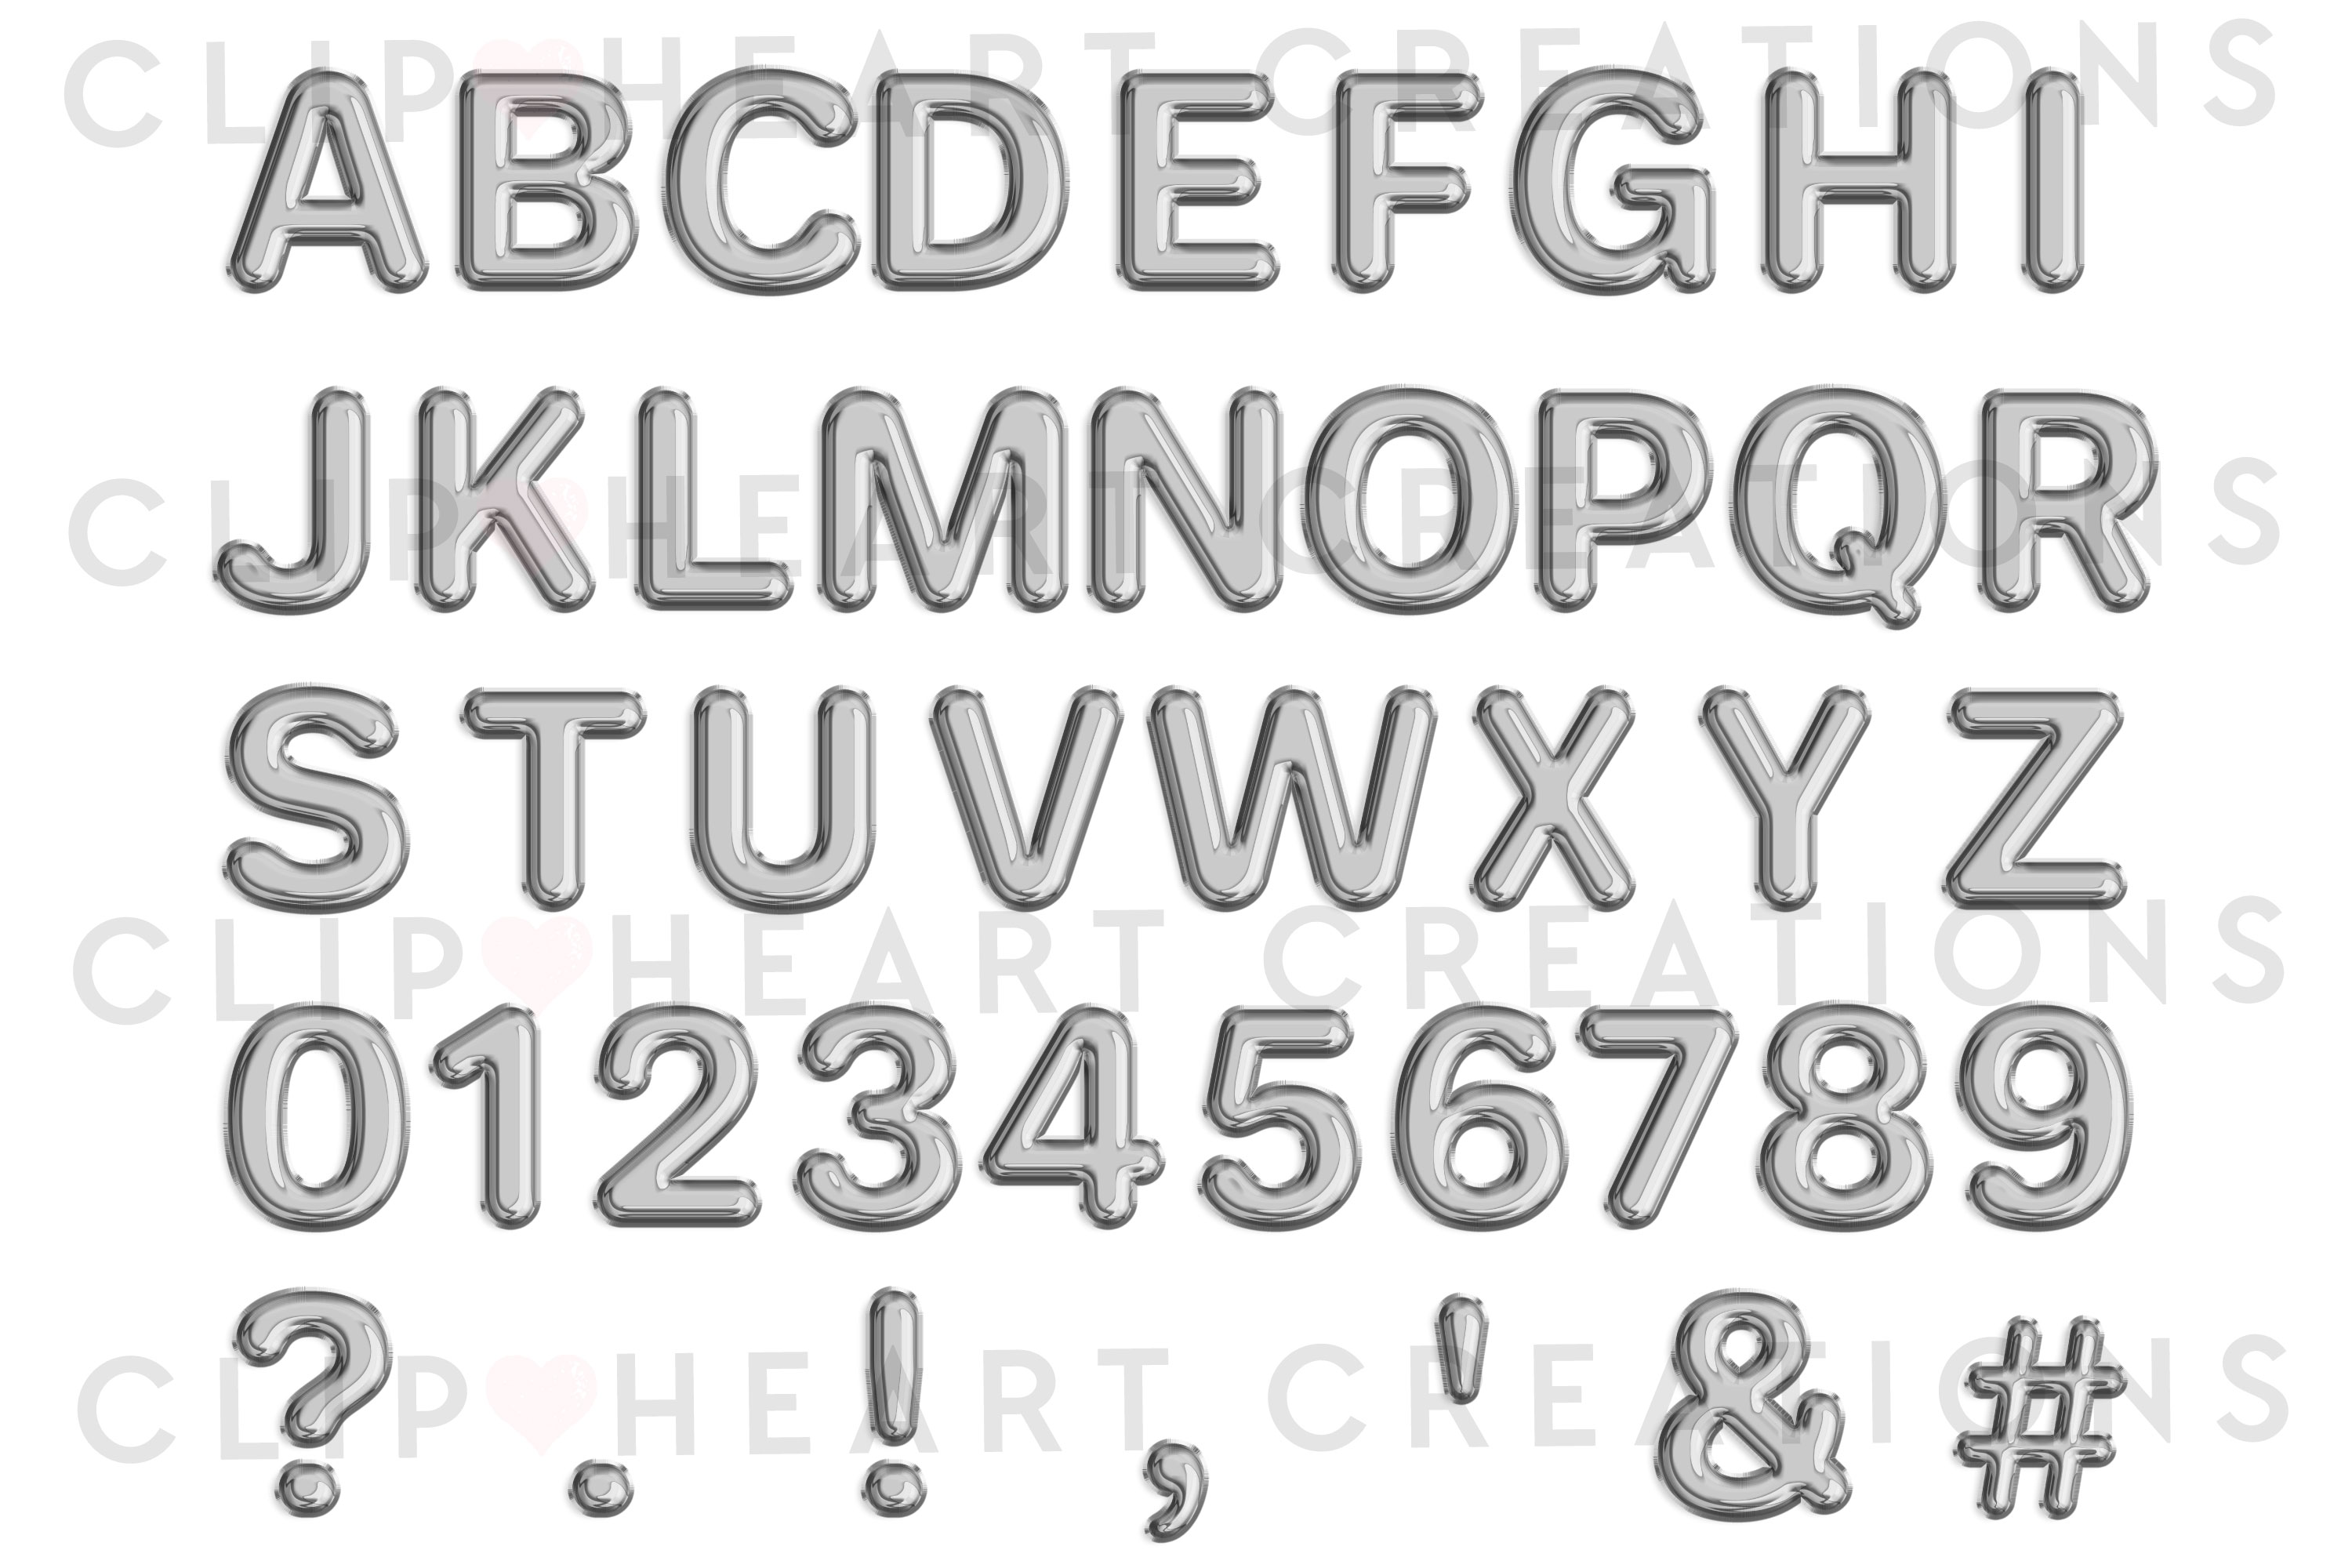 Silver Foil Balloon Alphabet & Numbers example image 2